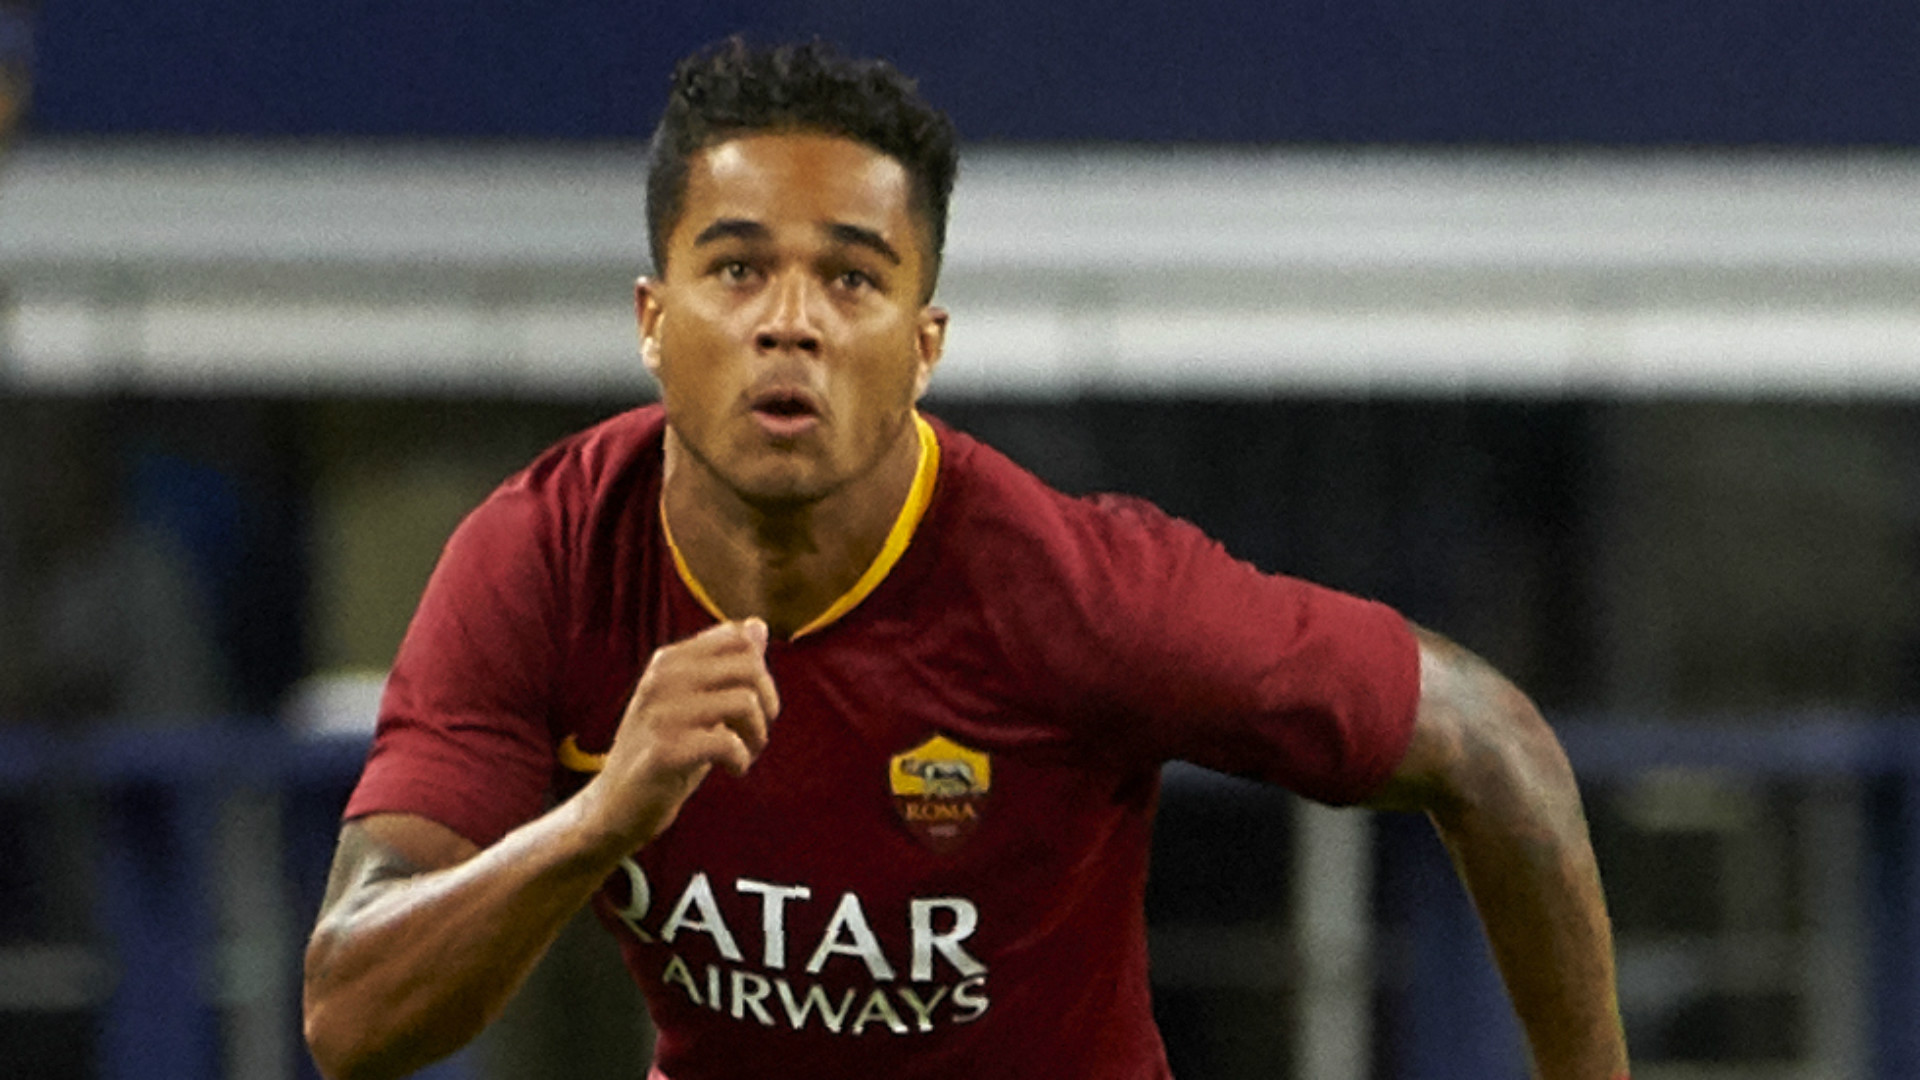 Kluivert: I would have liked to beat Real Madrid with Ajax